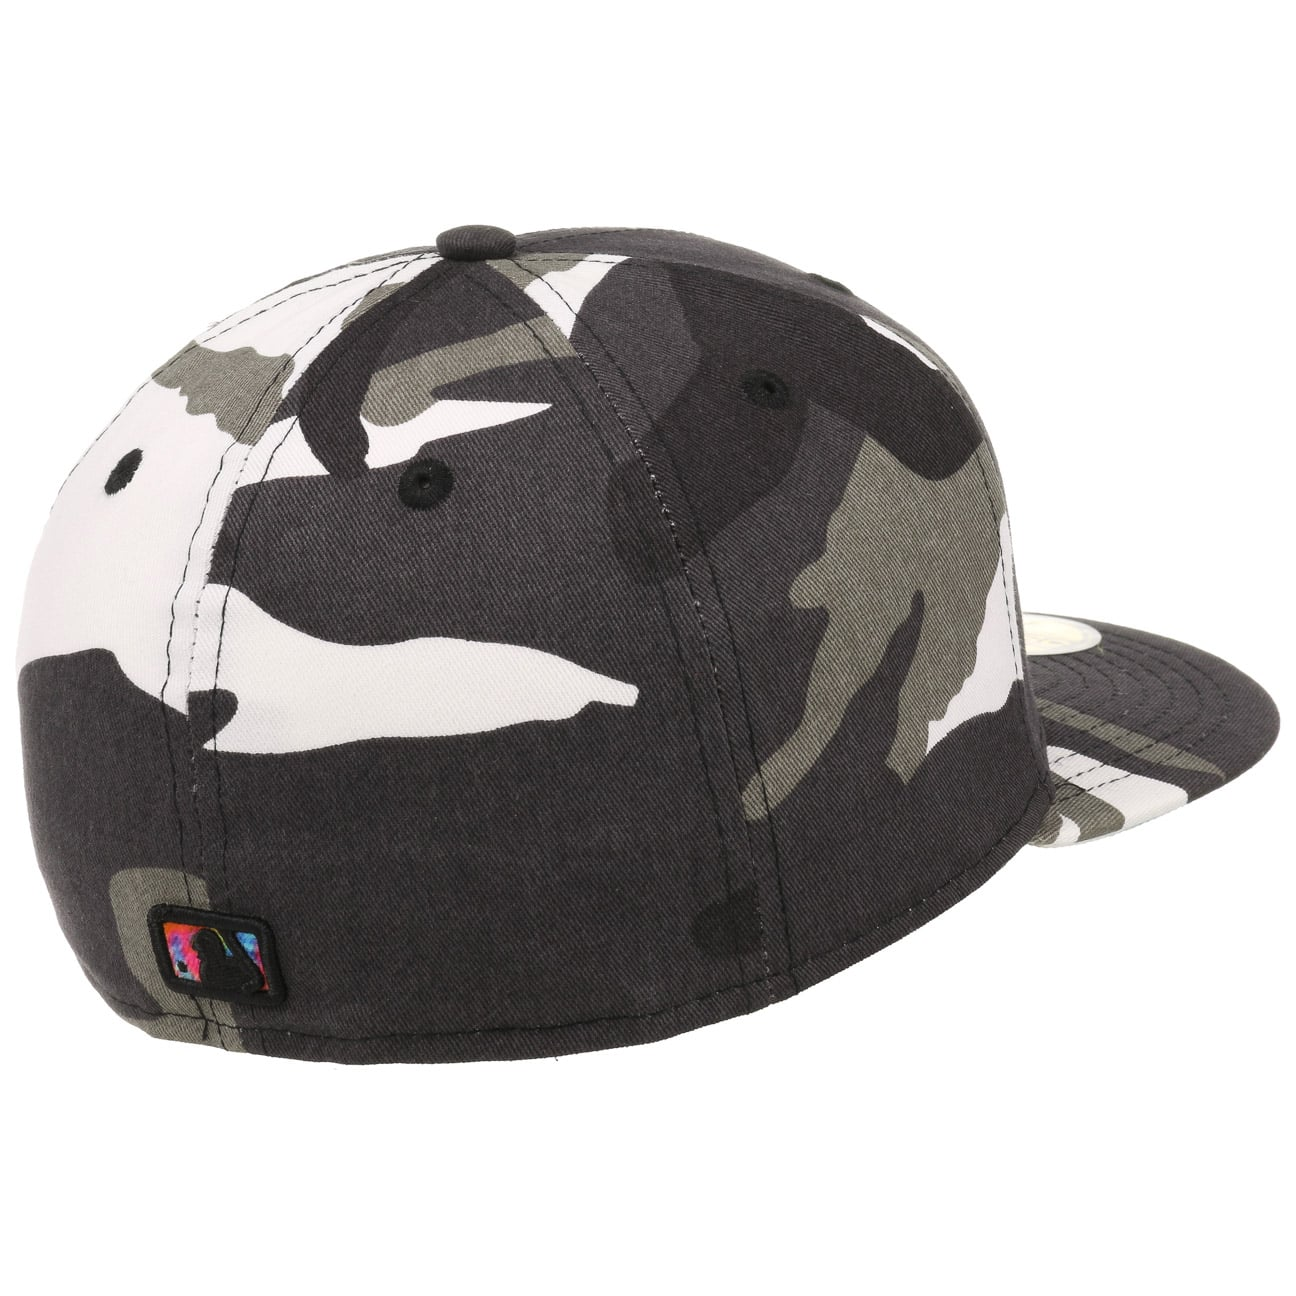 ea8d5899f05 ... 59Fifty Camo Colour Swirl Cap by New Era - grey 4 ...